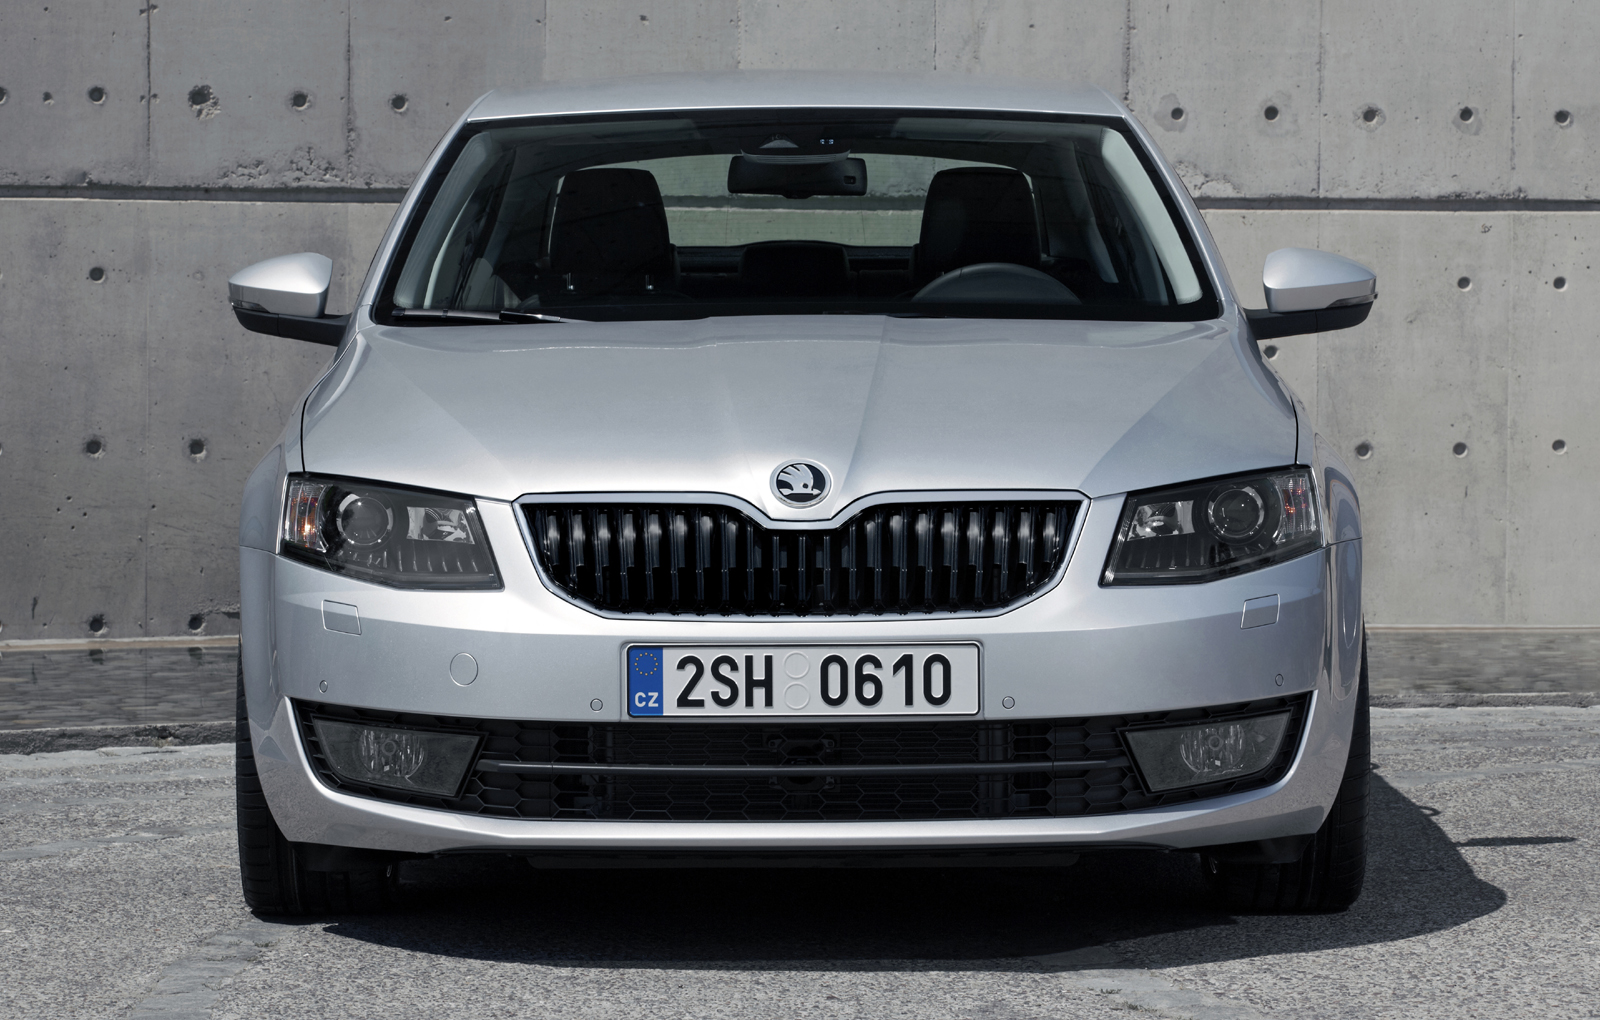 skoda octavia iii 1 4 tsi 140 hp acceleration tests autoevolution. Black Bedroom Furniture Sets. Home Design Ideas